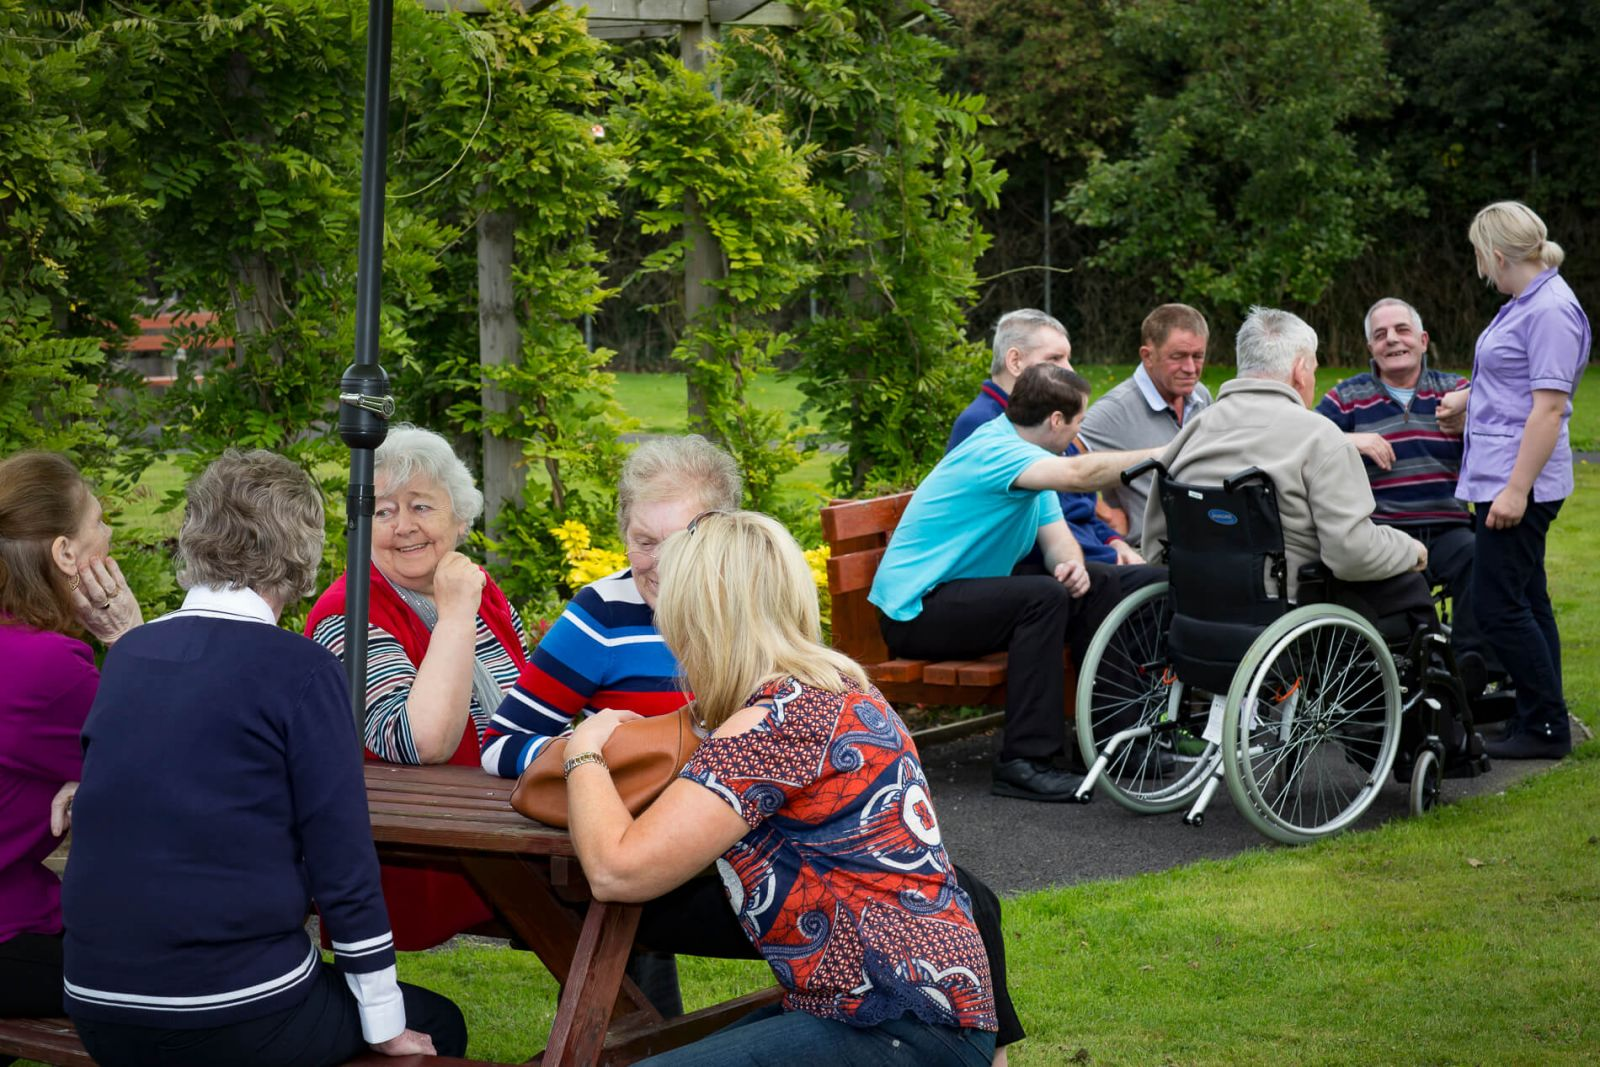 residents and their friends and families in the garden interacting